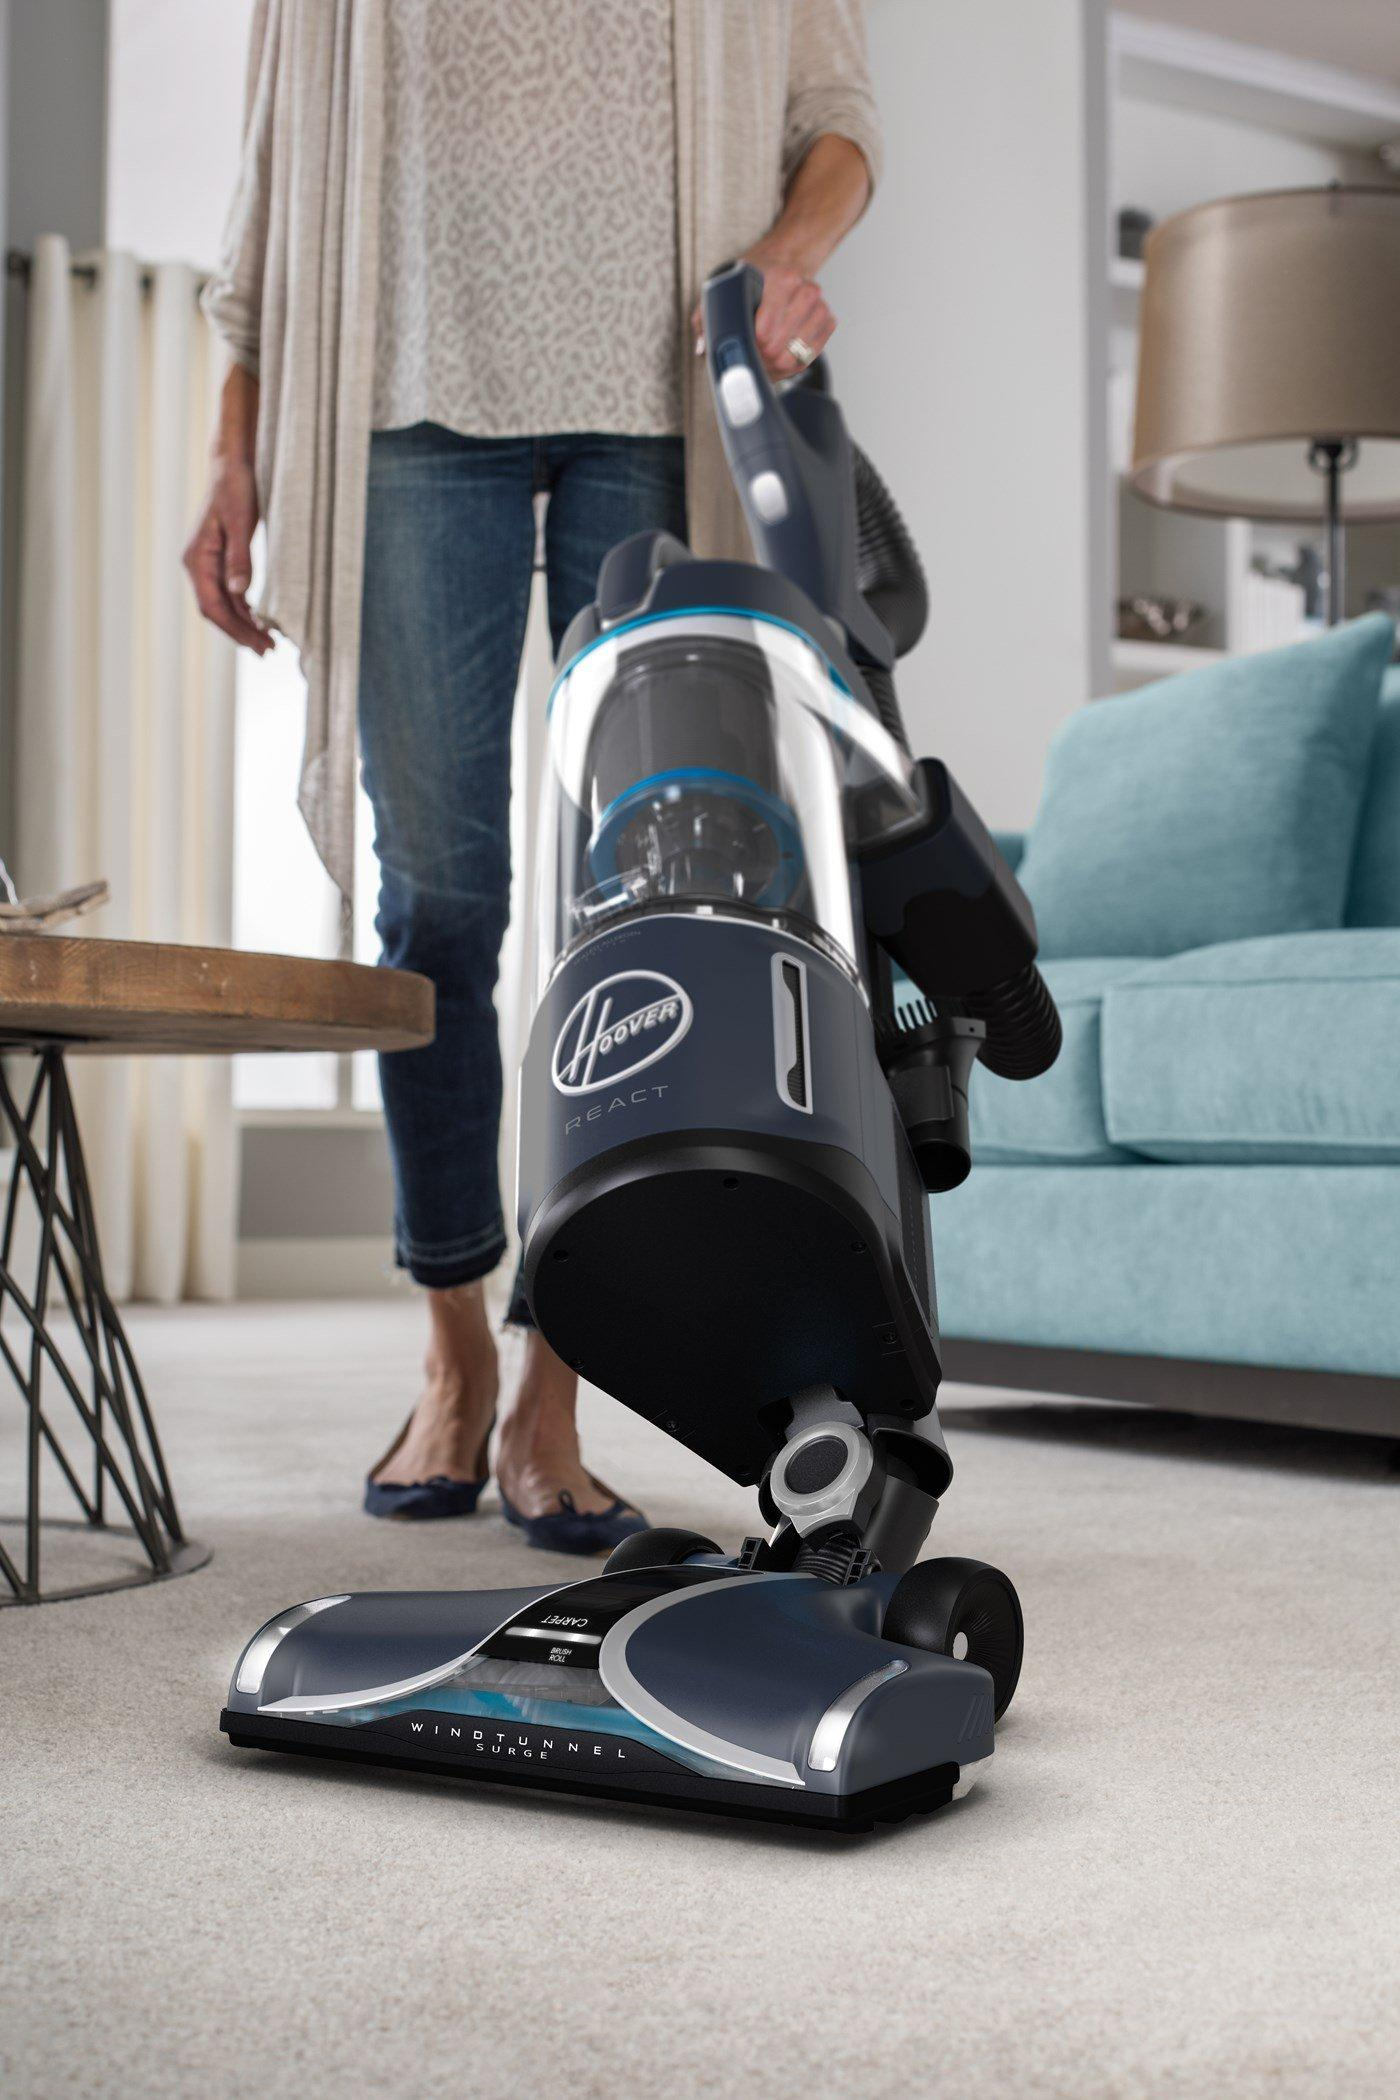 REACT Powered Reach Premier Upright Vacuum6